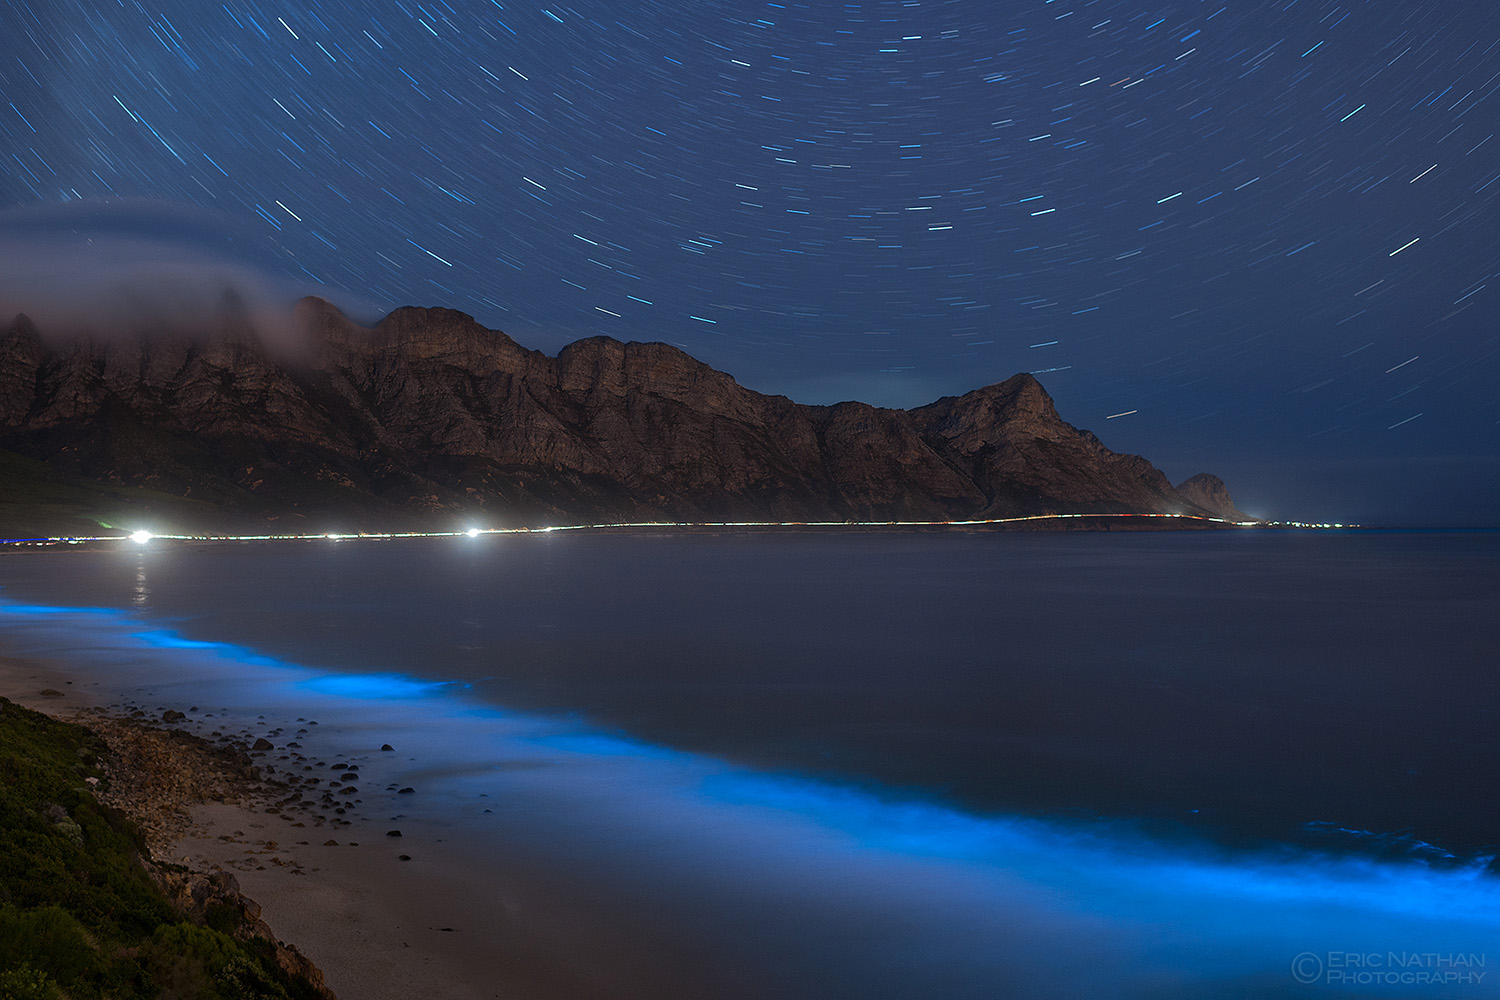 Bioluminescence in Cape Town